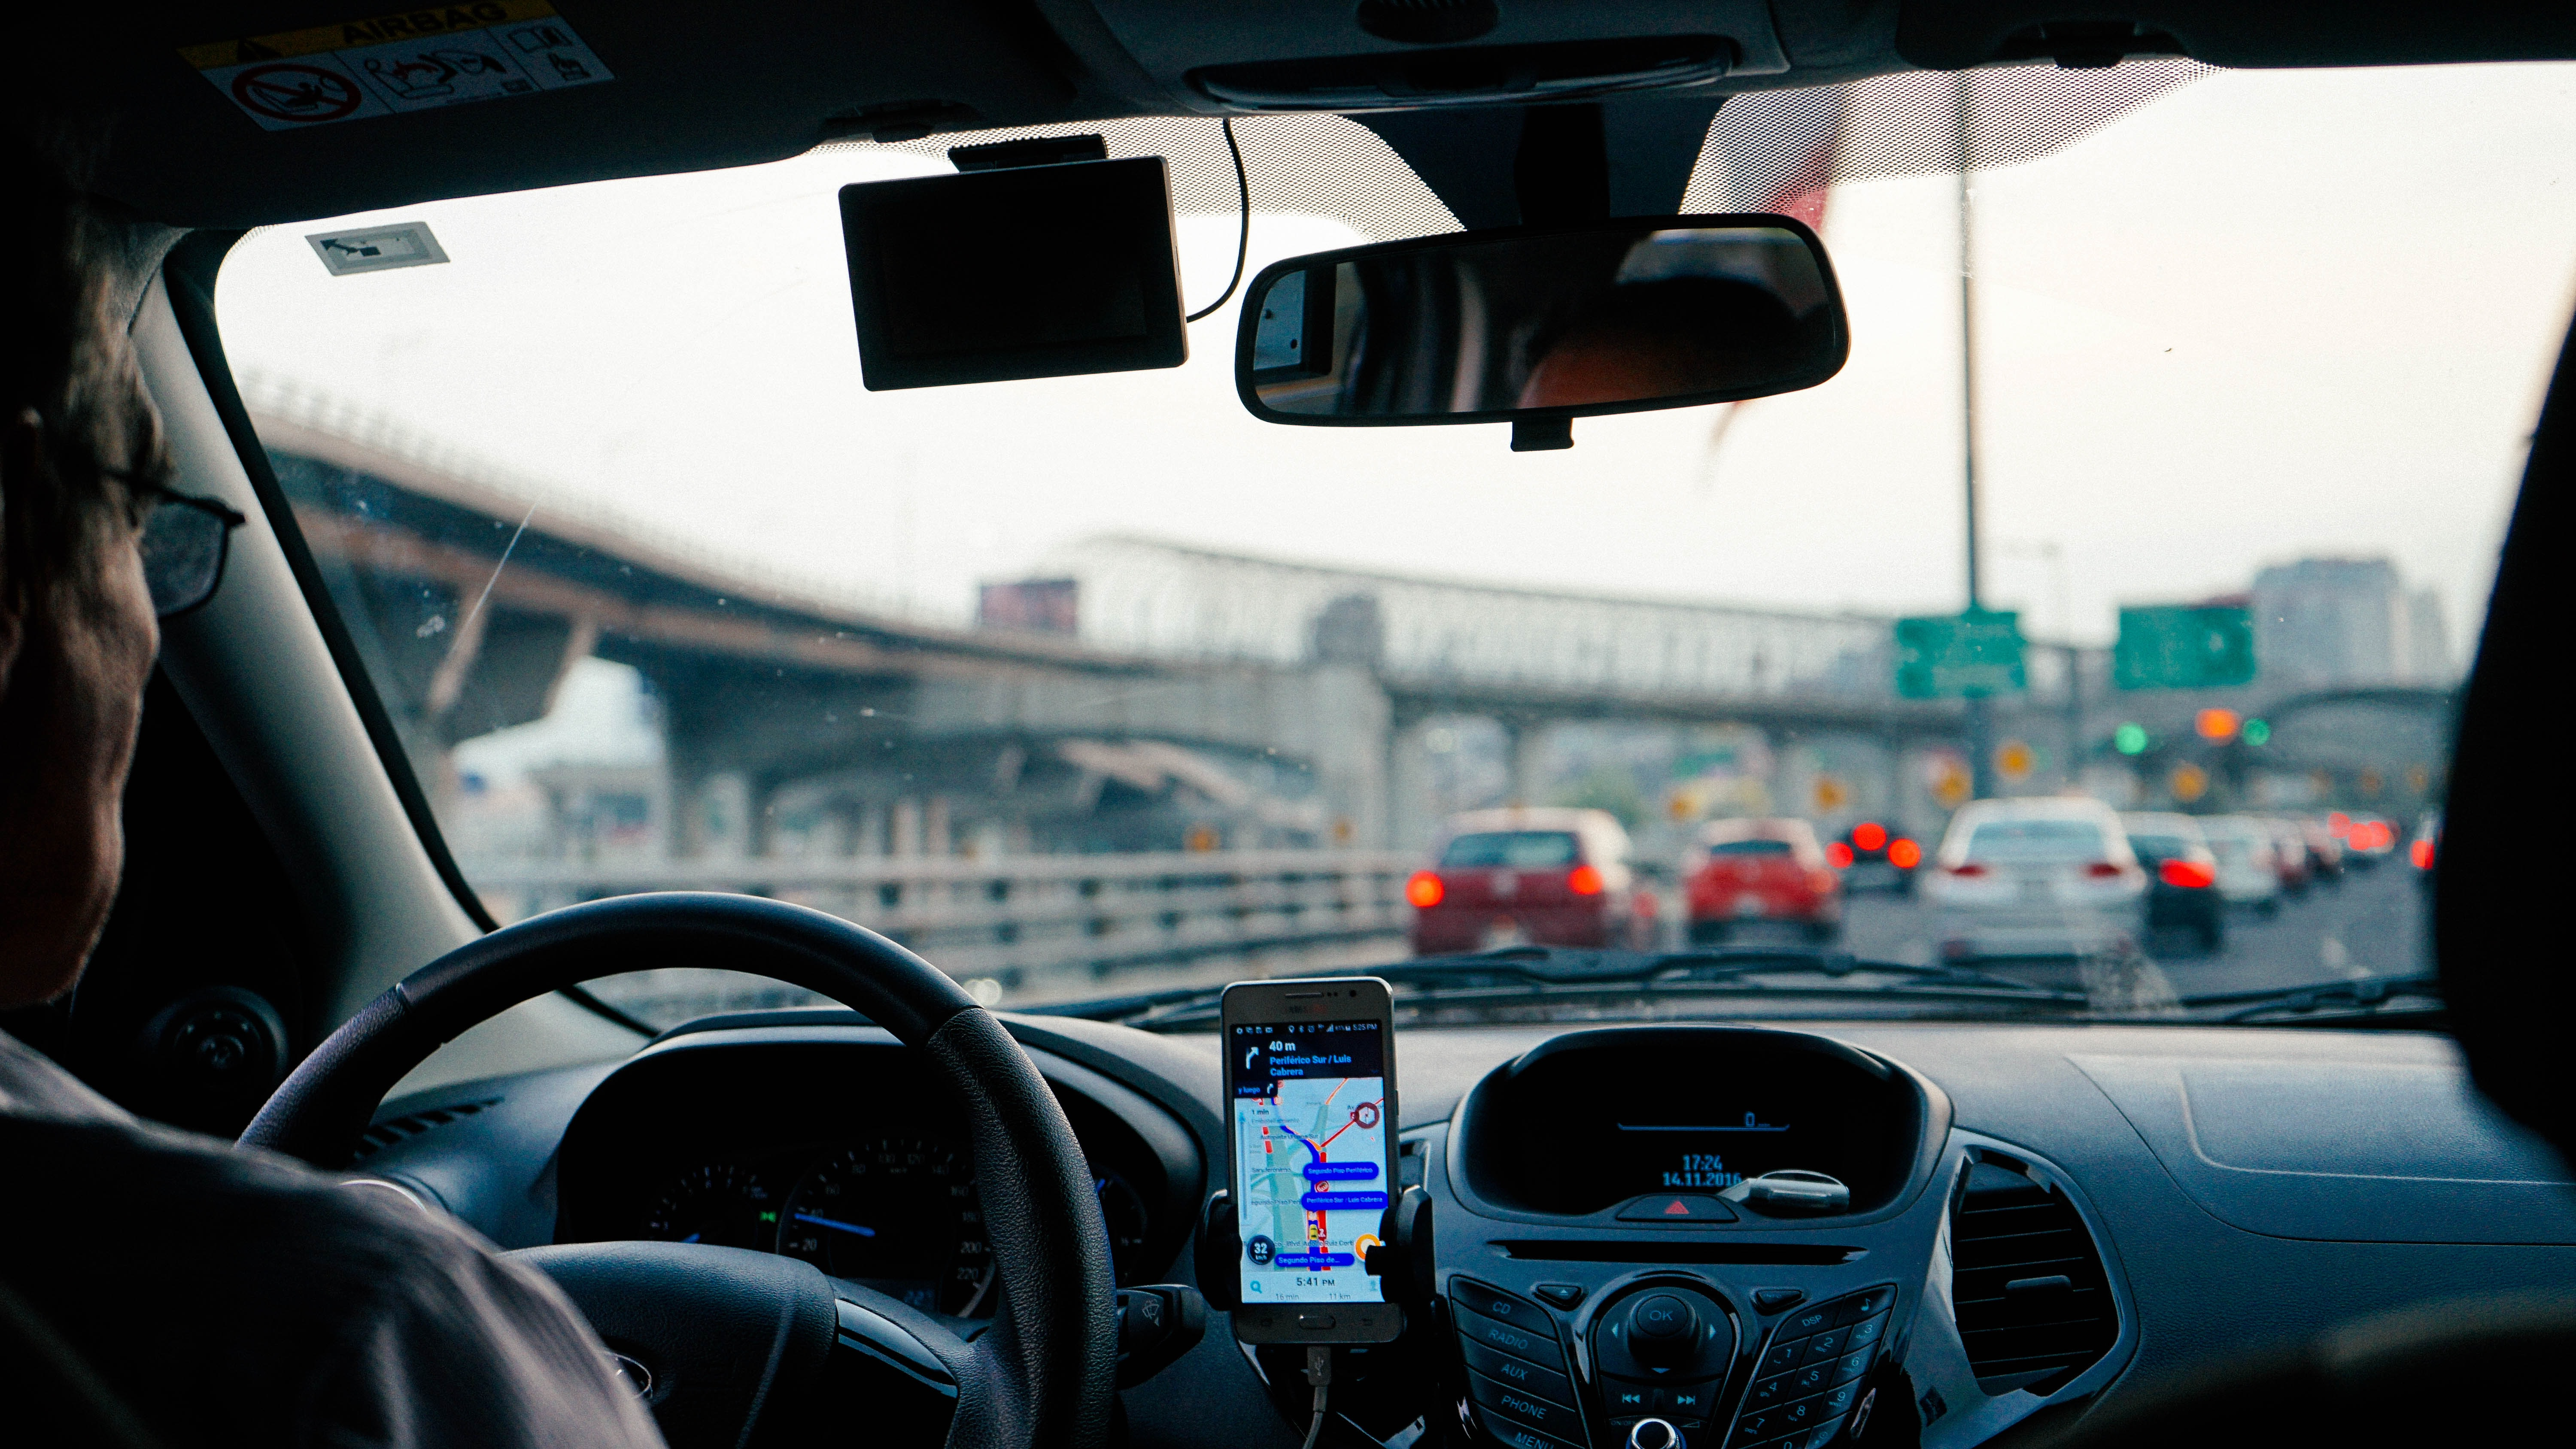 rideshare apps among diverse audiences